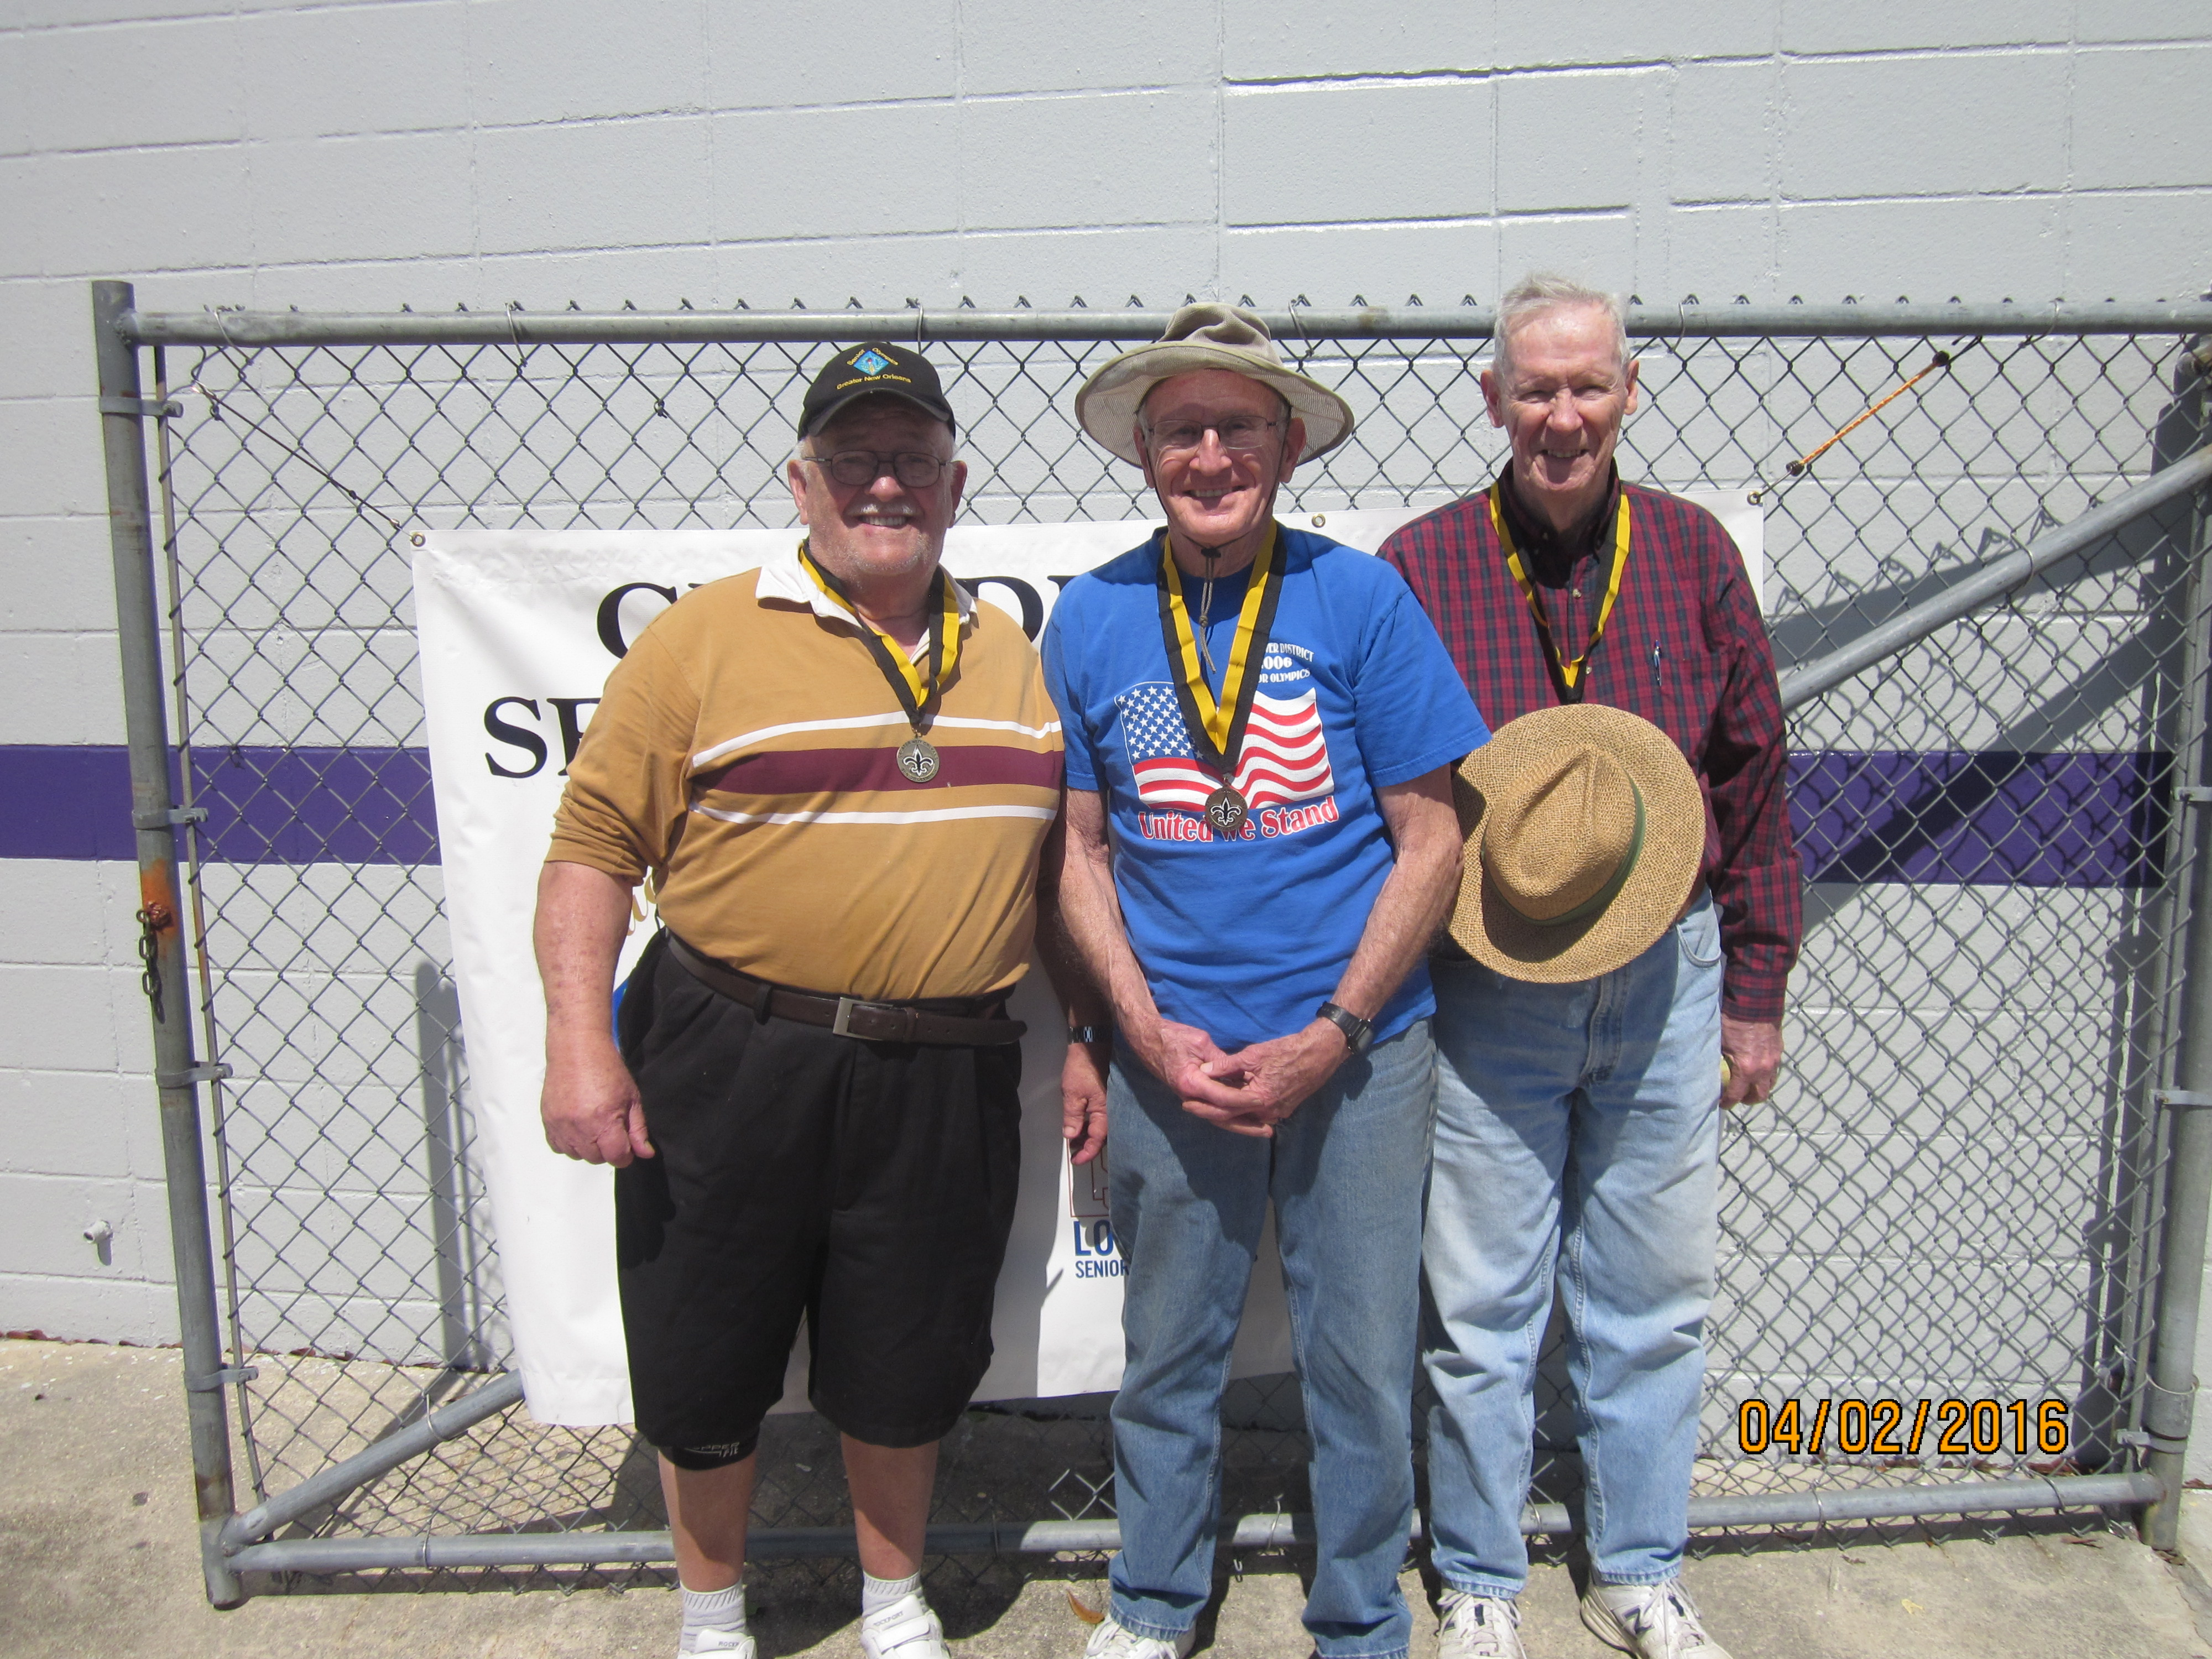 2016 Horseshoes Photo 4 of Medalists